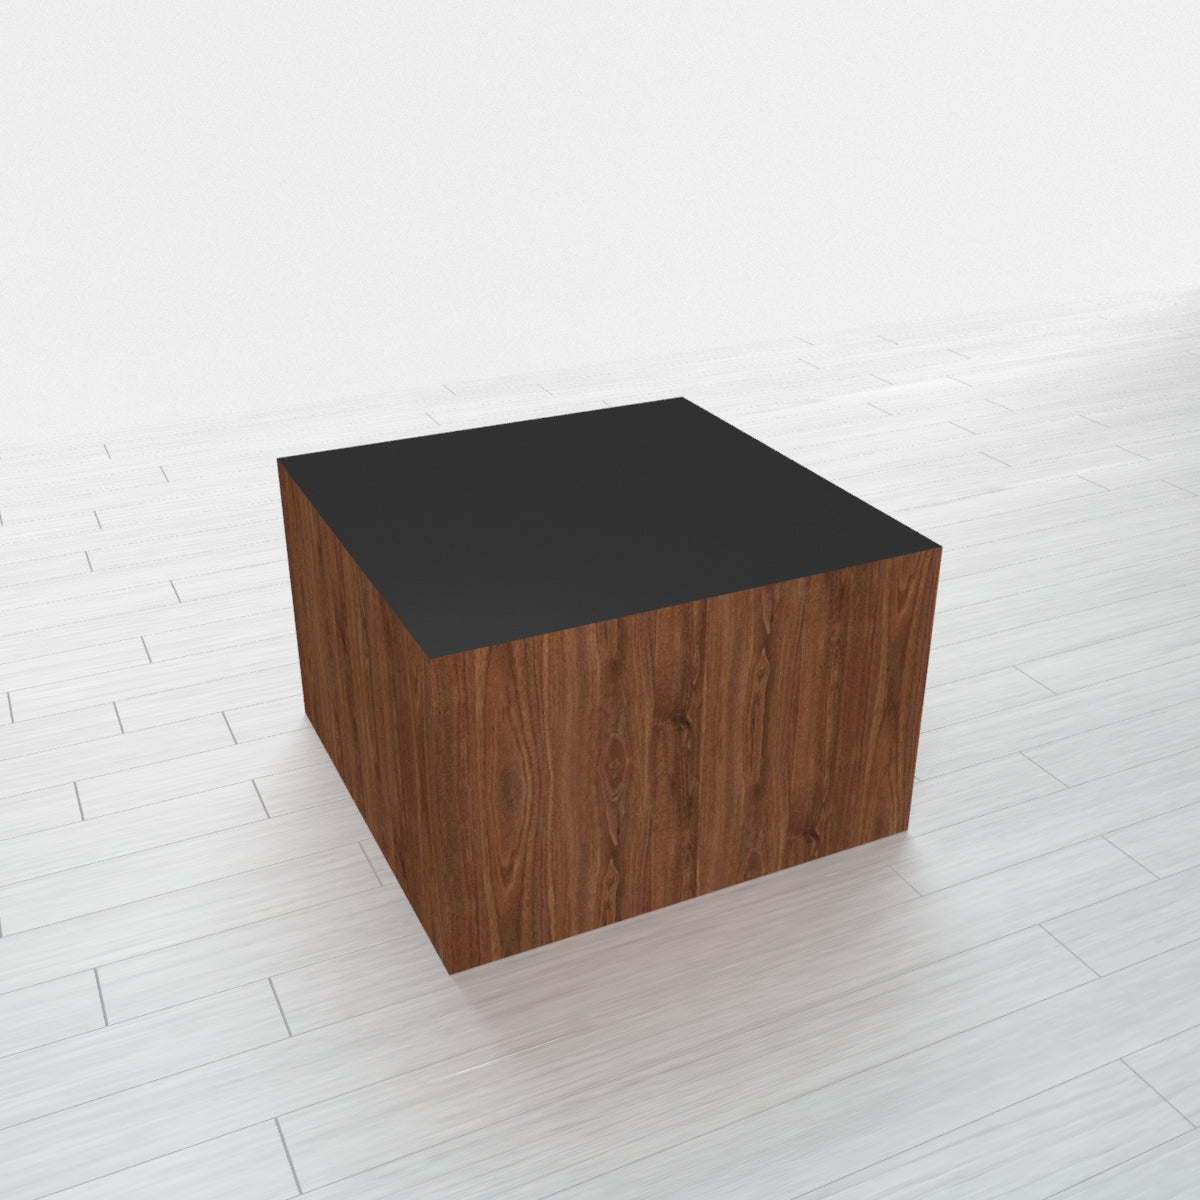 RECTANGLE - Thermo Walnut Base + Black Top - 18x18